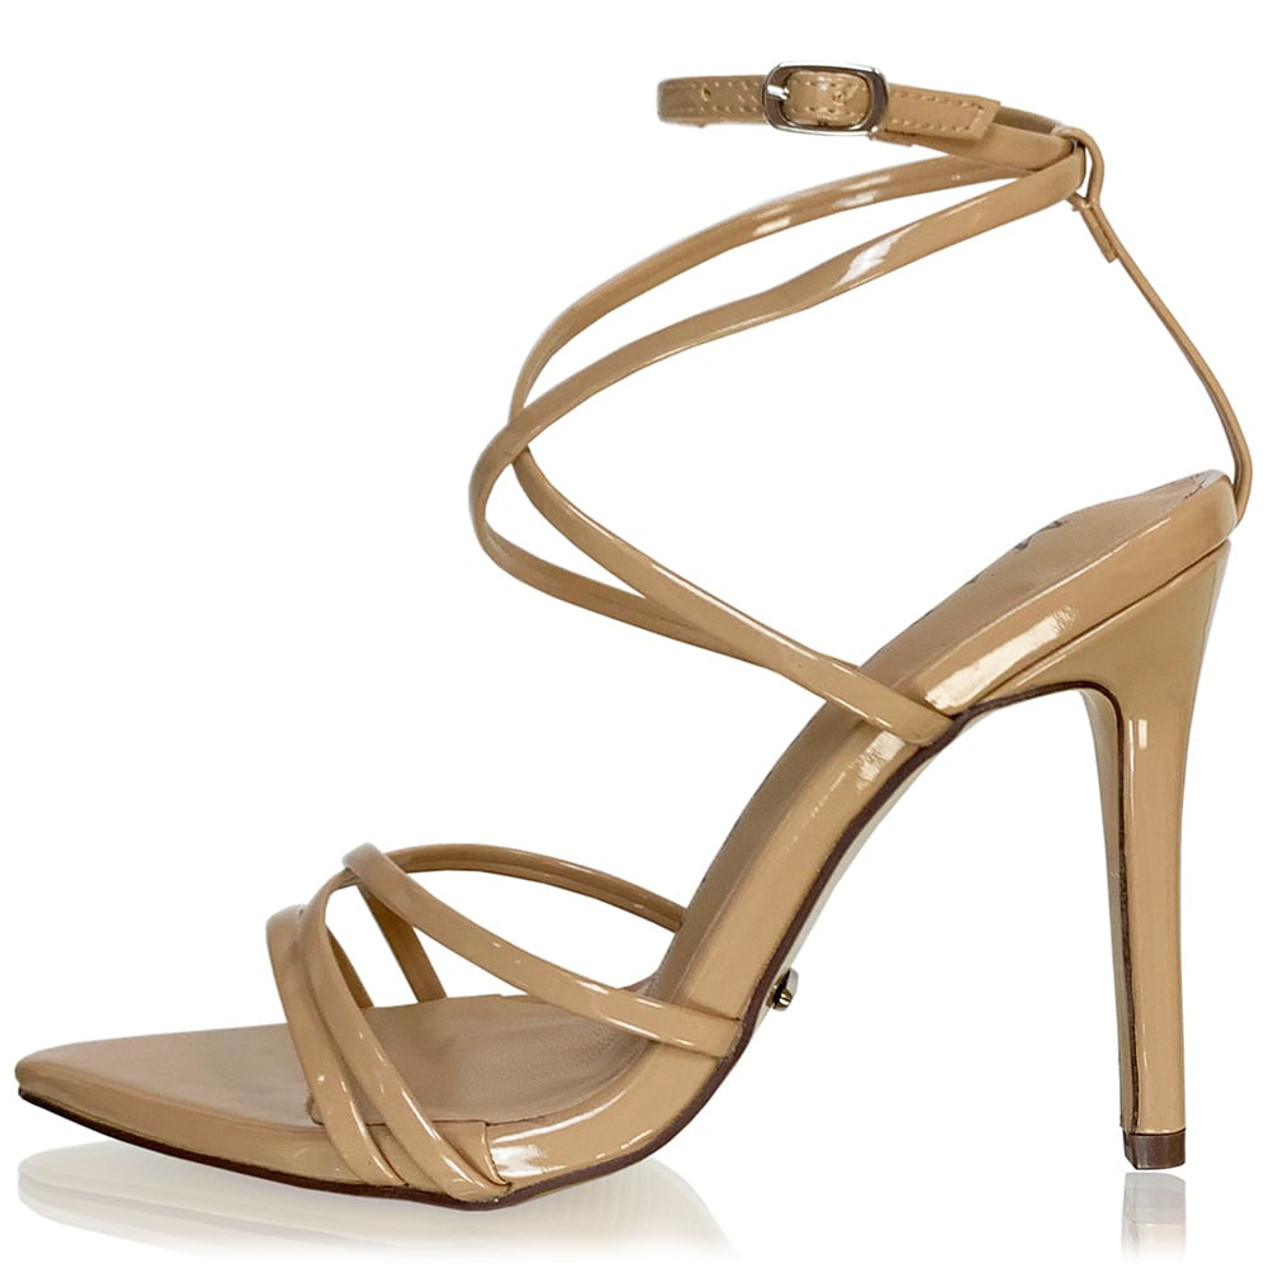 Strappy Pointy Nude Sandal Heels